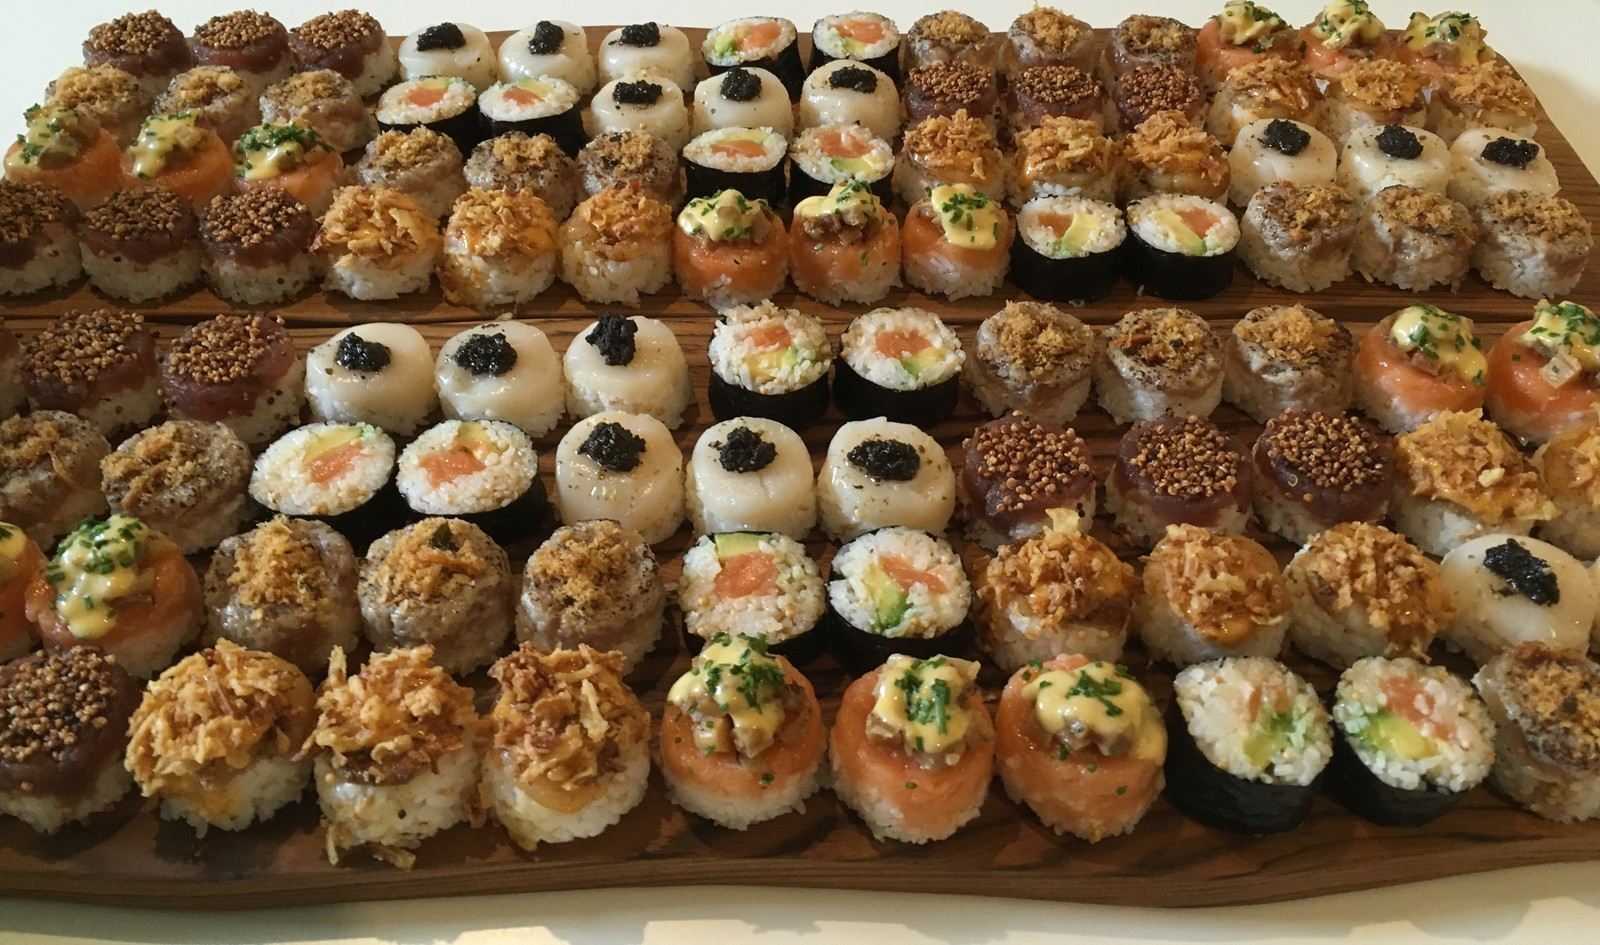 Afhaal Sushi Dendermonde Isasushi Add to wishlist add to compare share. afhaal sushi dendermonde isasushi